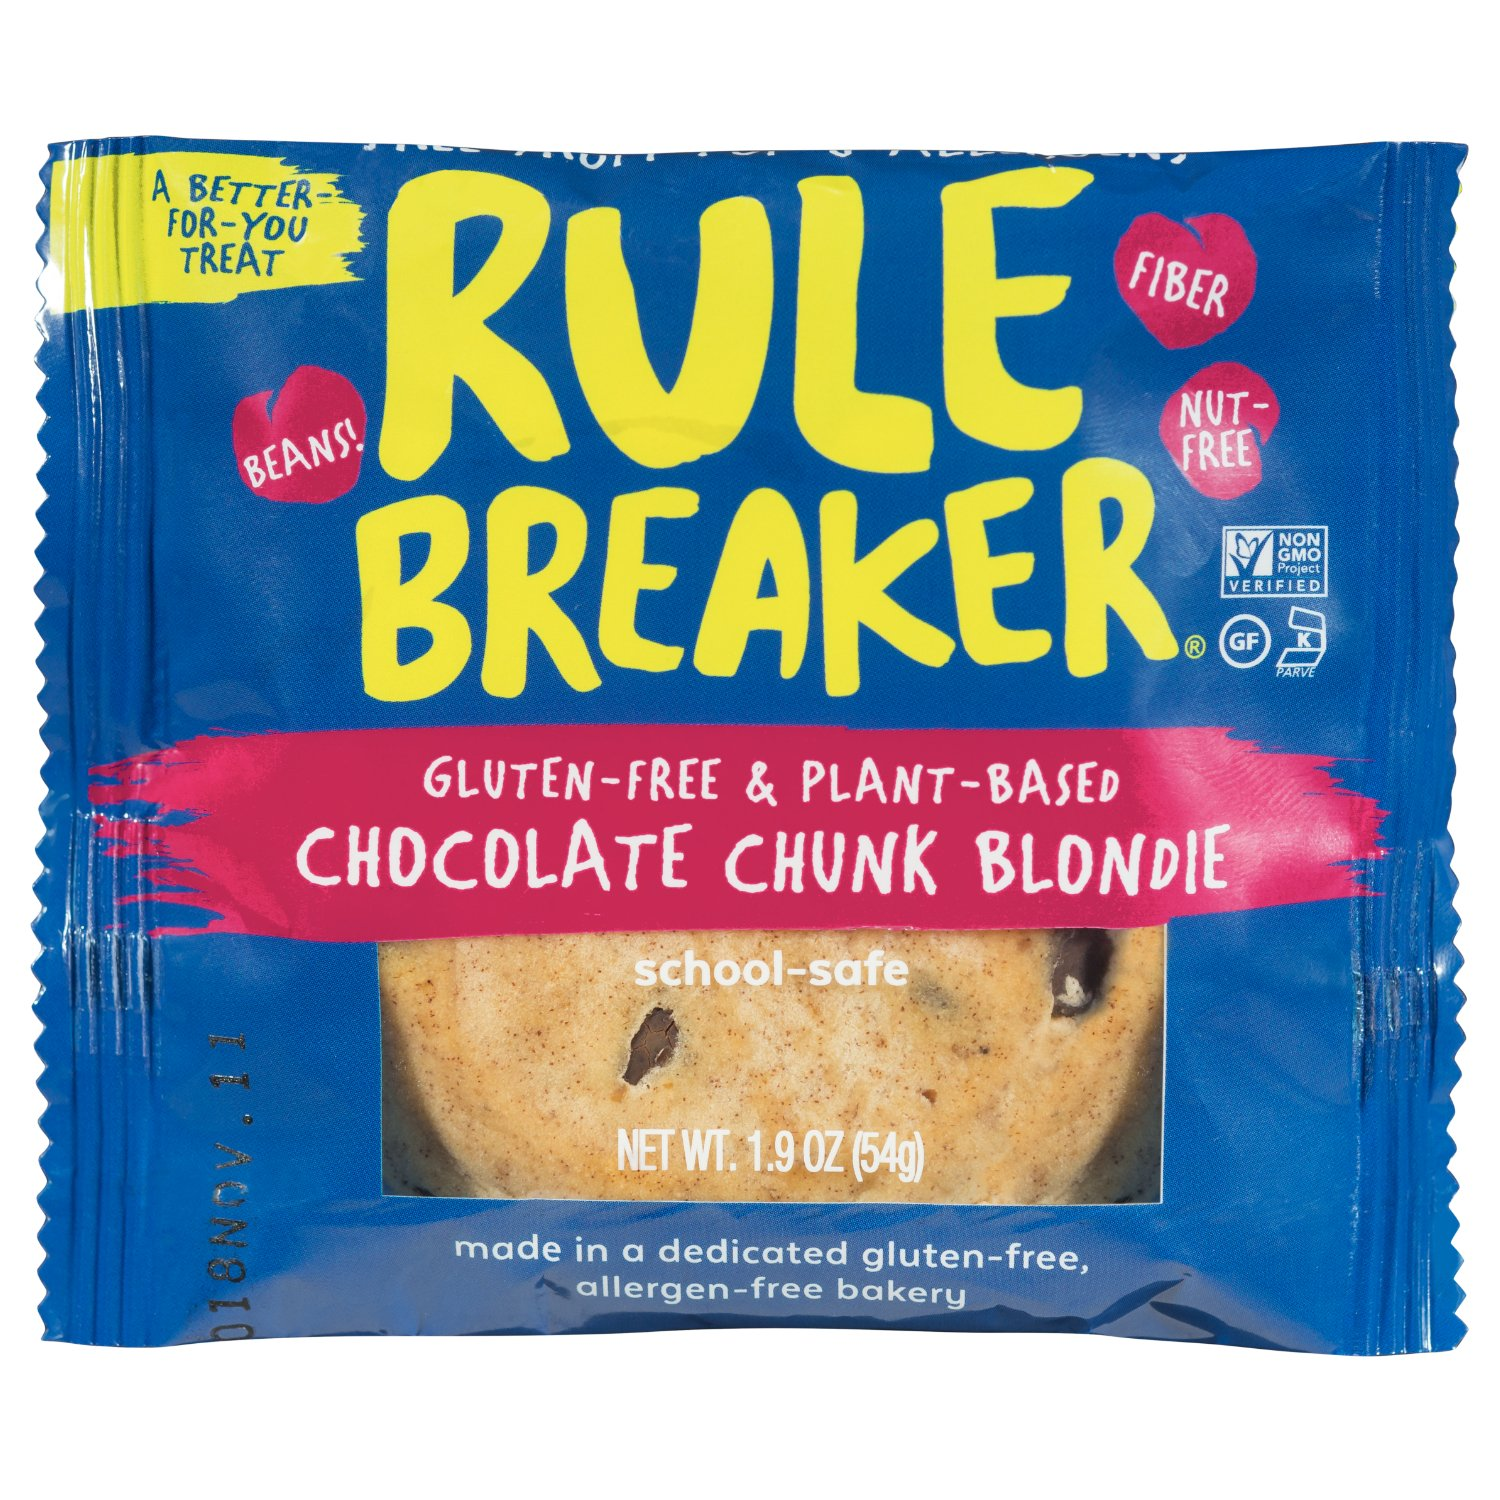 Rule Breaker Snacks, Chocolate Chunk Blondie, Healthy and Unbelievably Delicious, Vegan, Gluten Free, Nut Free, Free from Top Eight Allergens, Kosher (12ct pack)